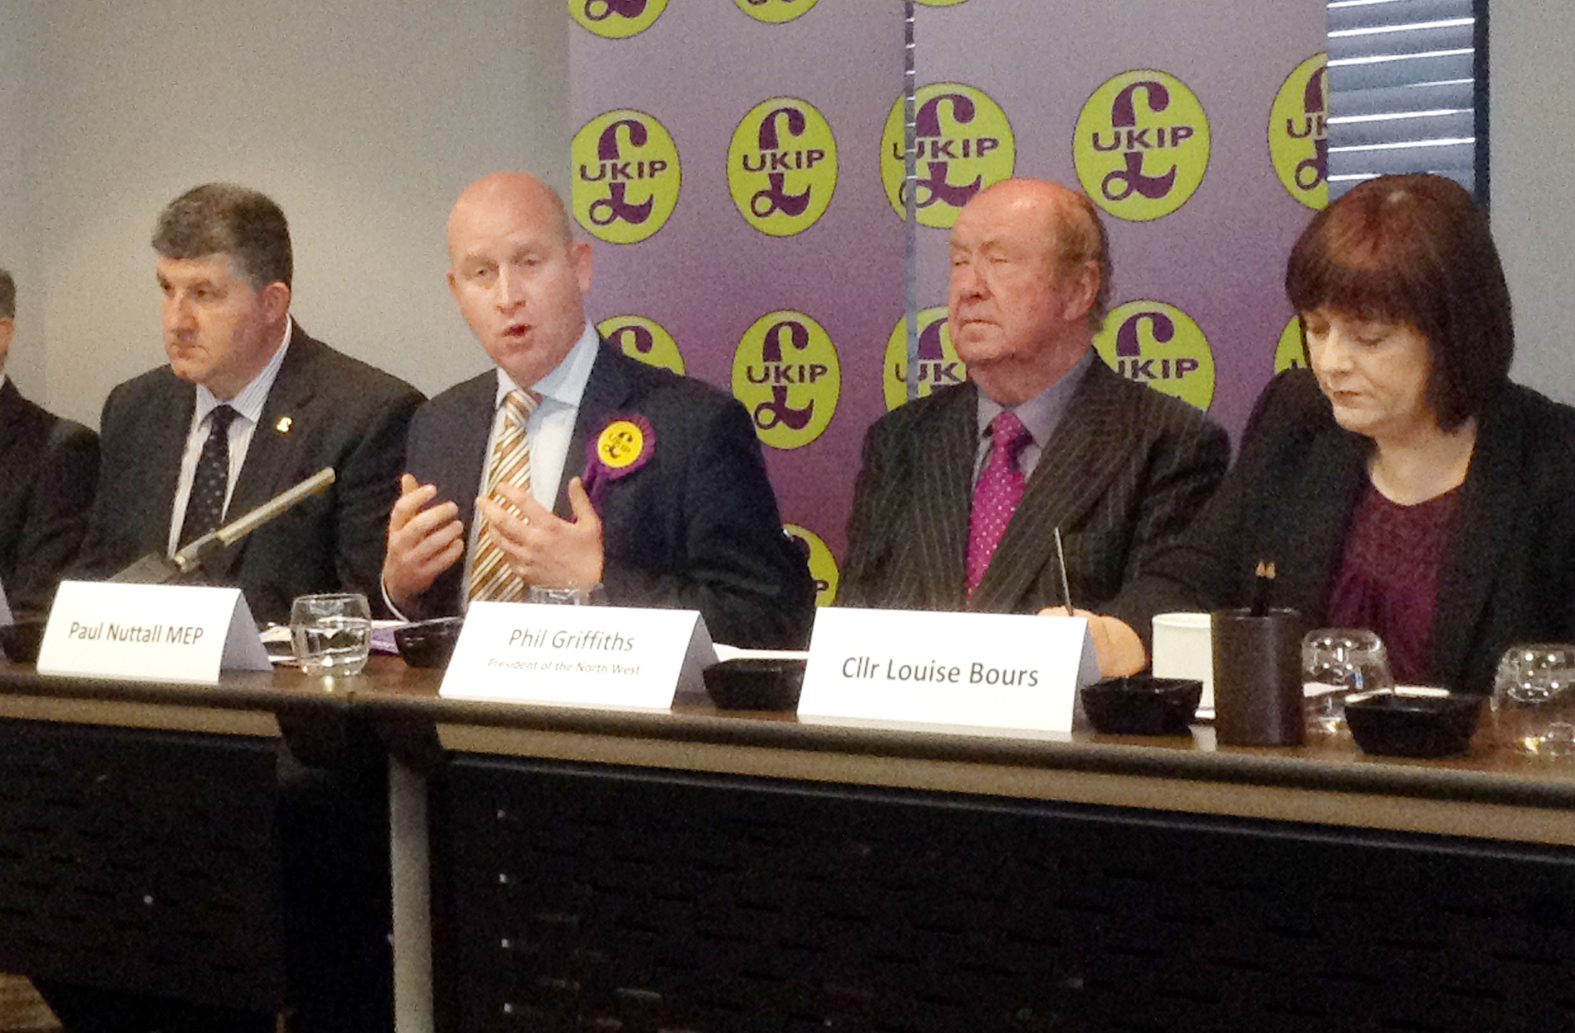 UKIP launched their North West election campaign today.